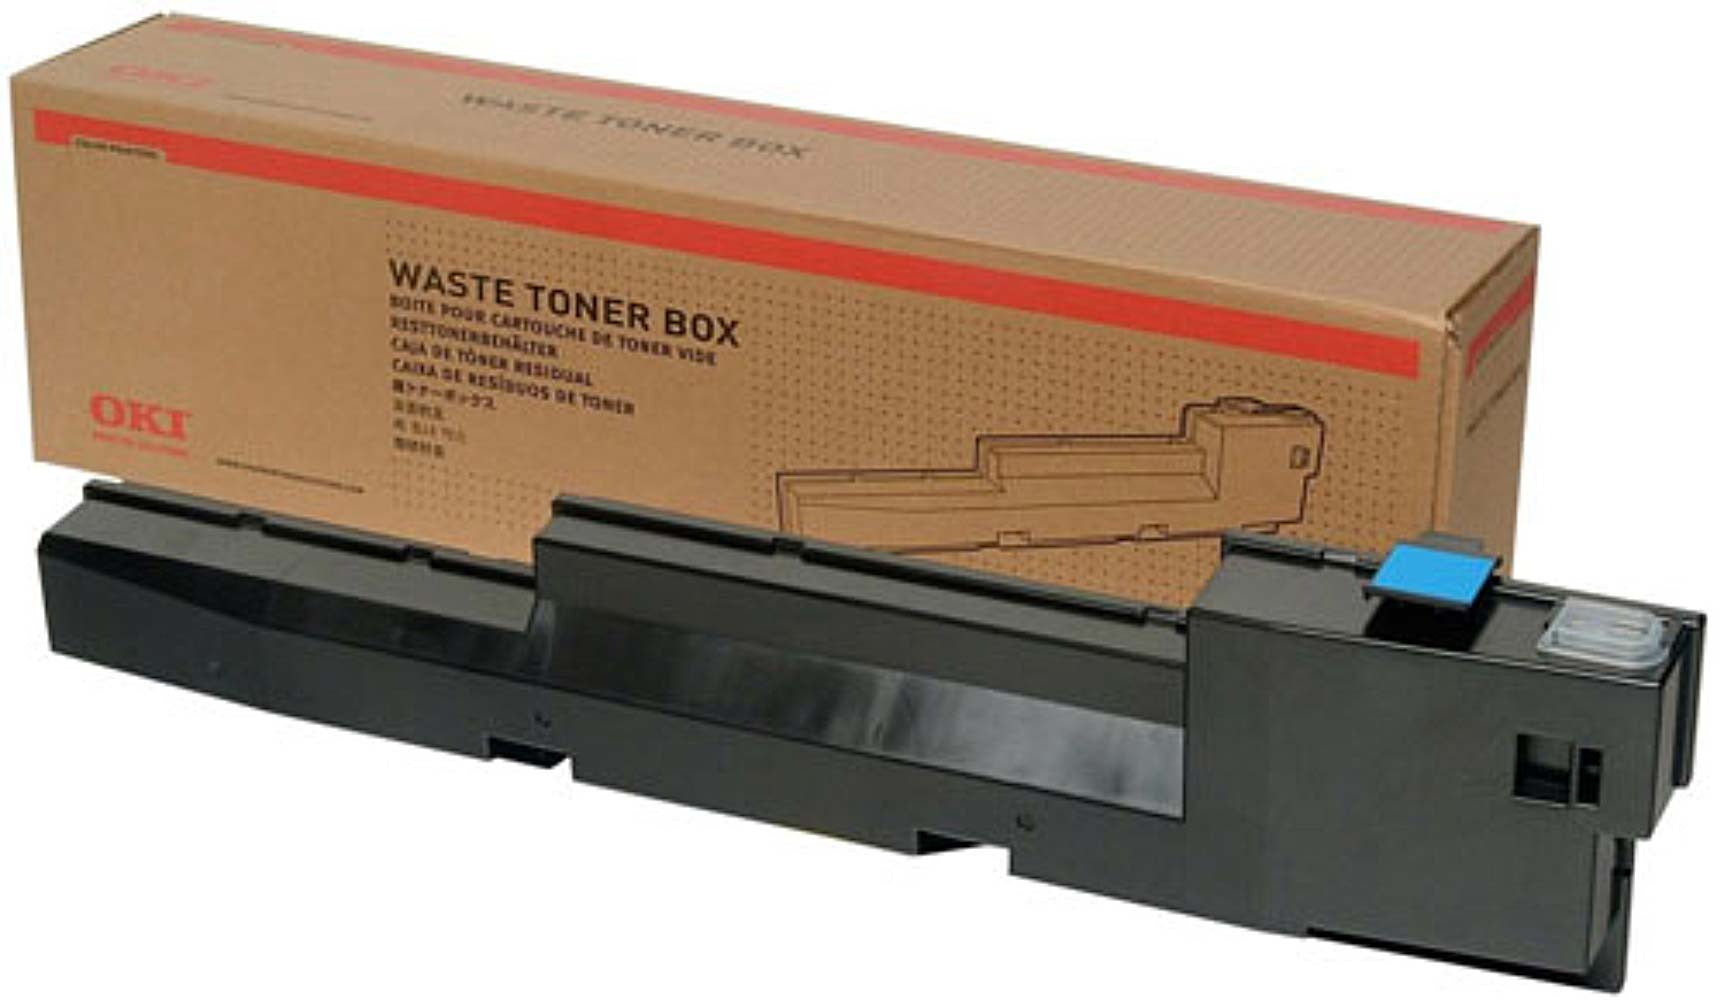 OKI  C9600-C9650-C9800 Waste toner collection bottle 42869401